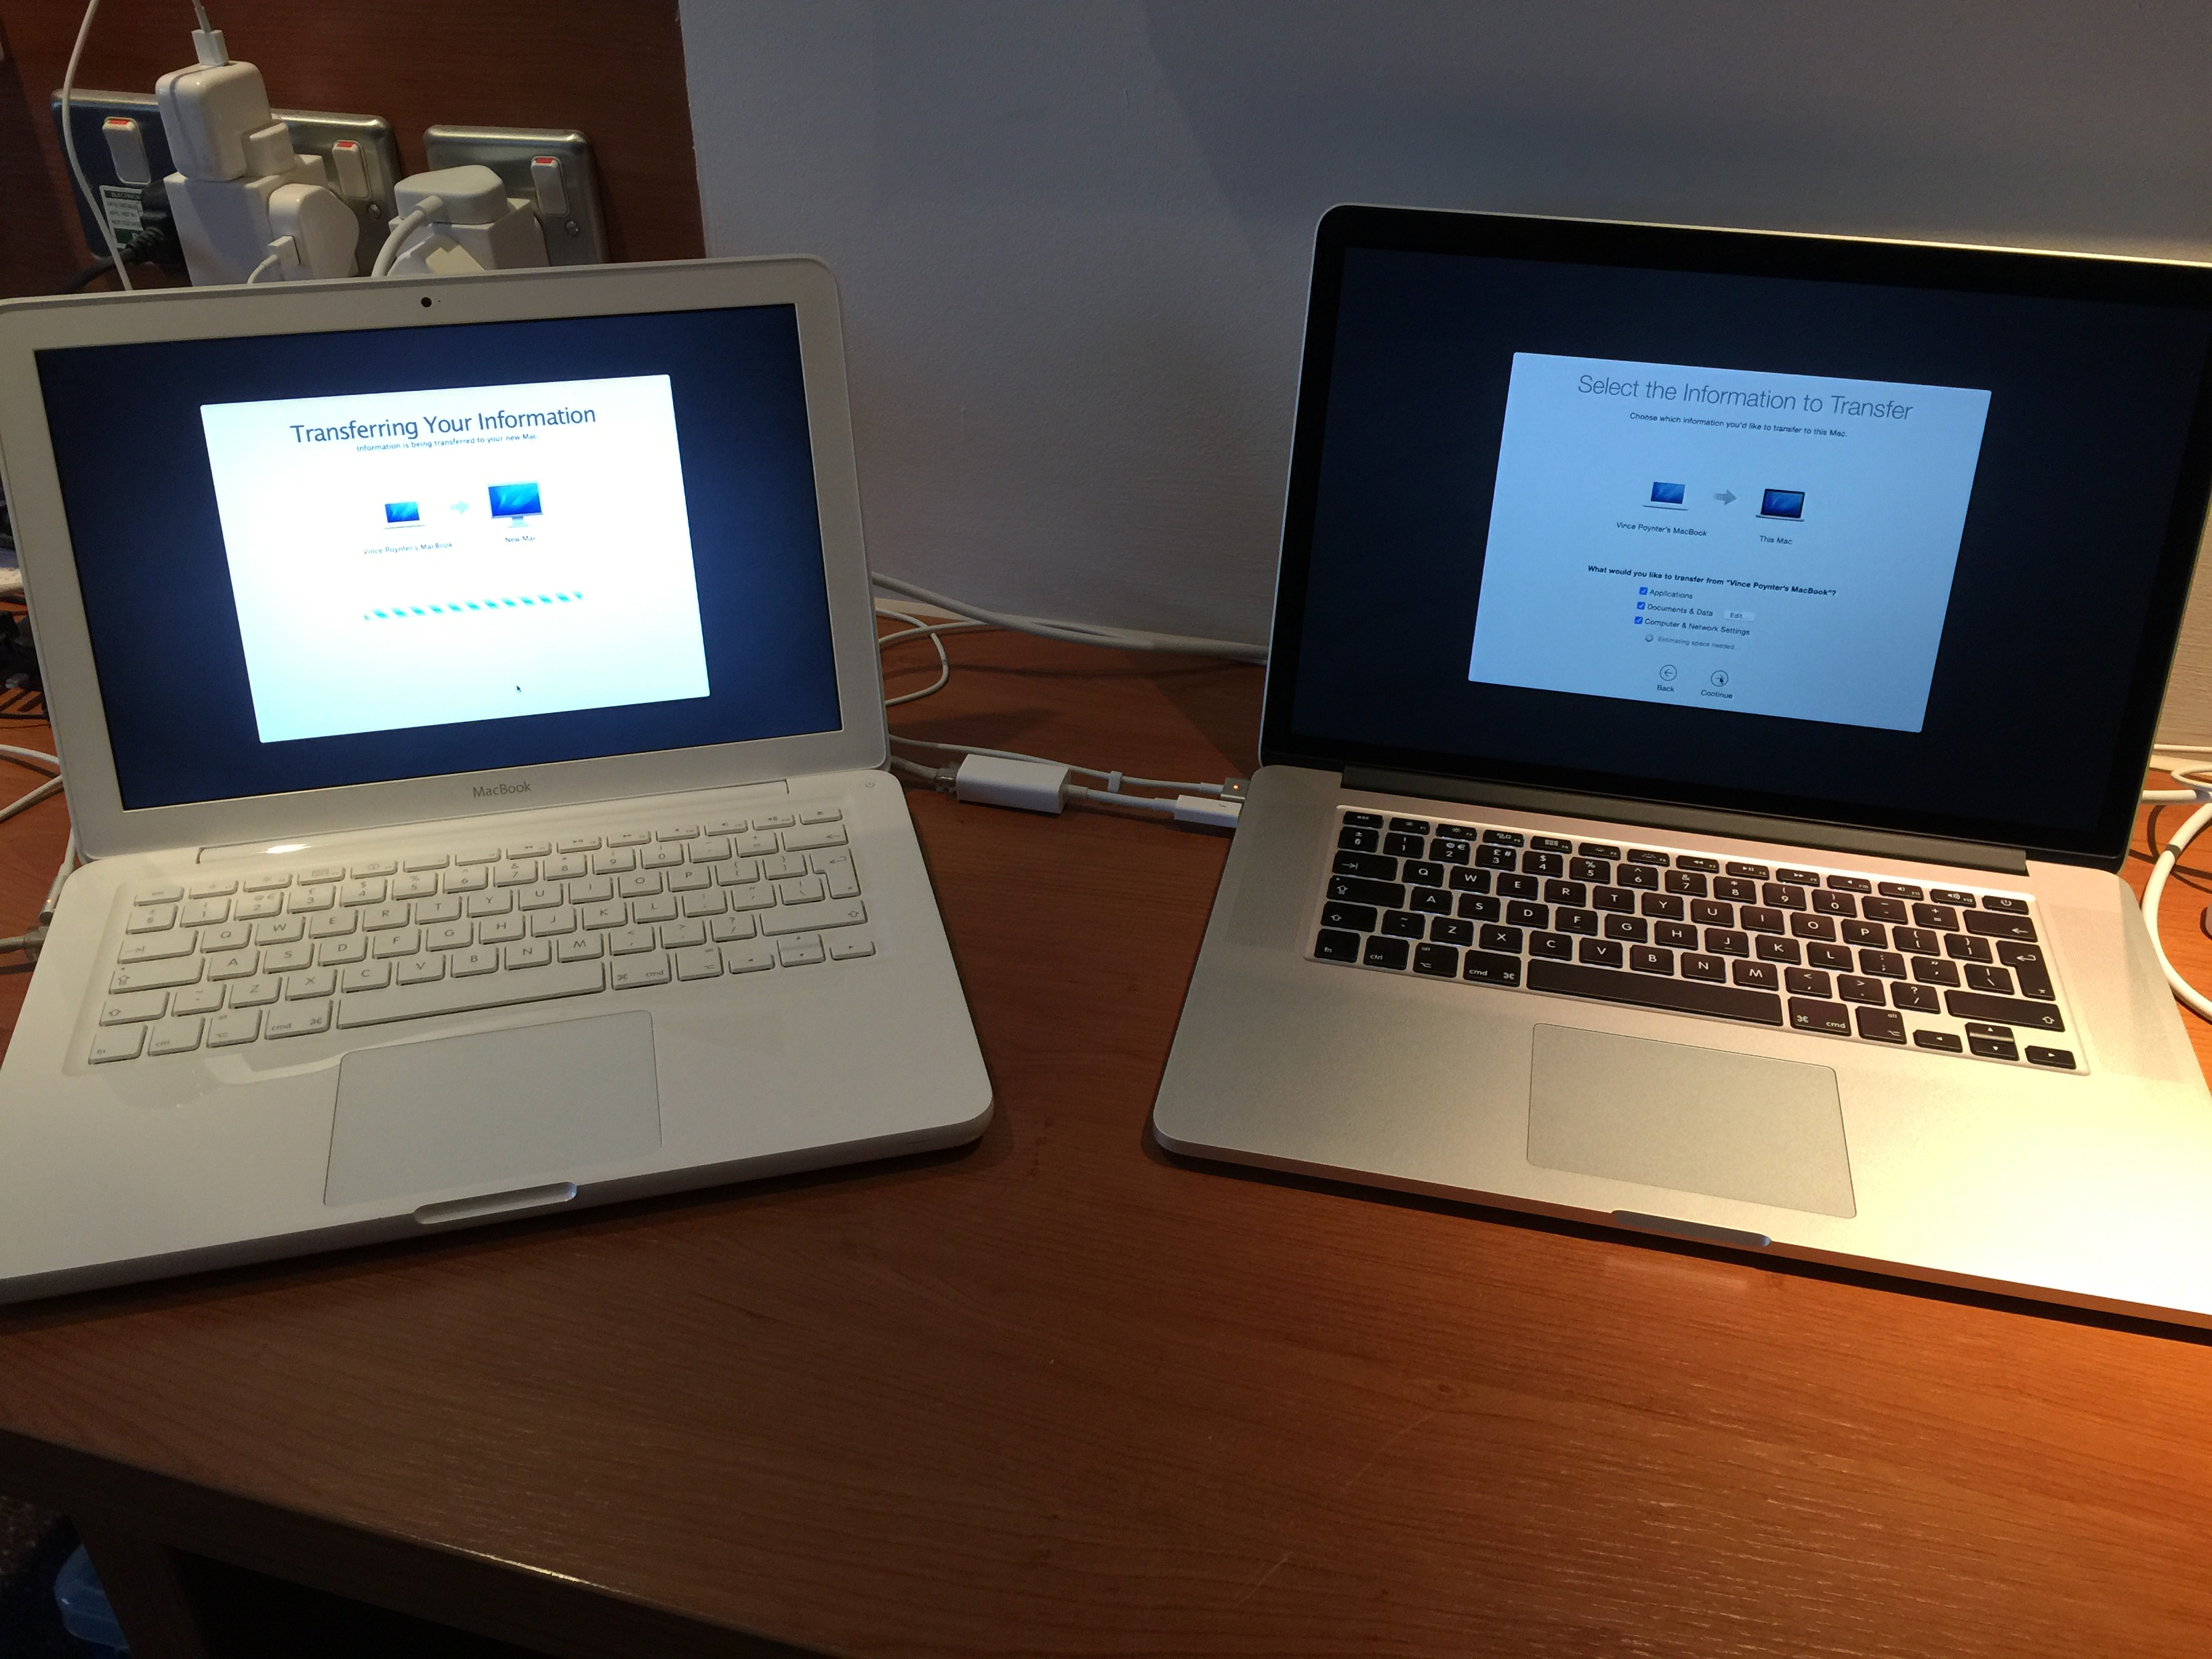 Two MacBooks side by side interconnected on a wooden desk top, linked by cables and connected to a heavily used pair of wall sockets. The white plastic, unibody MacBook on the left shows an operations window stating 'Transferring your information' and the silver MacBook Pro on the right shows an operations window stating Select the information to transfer'.